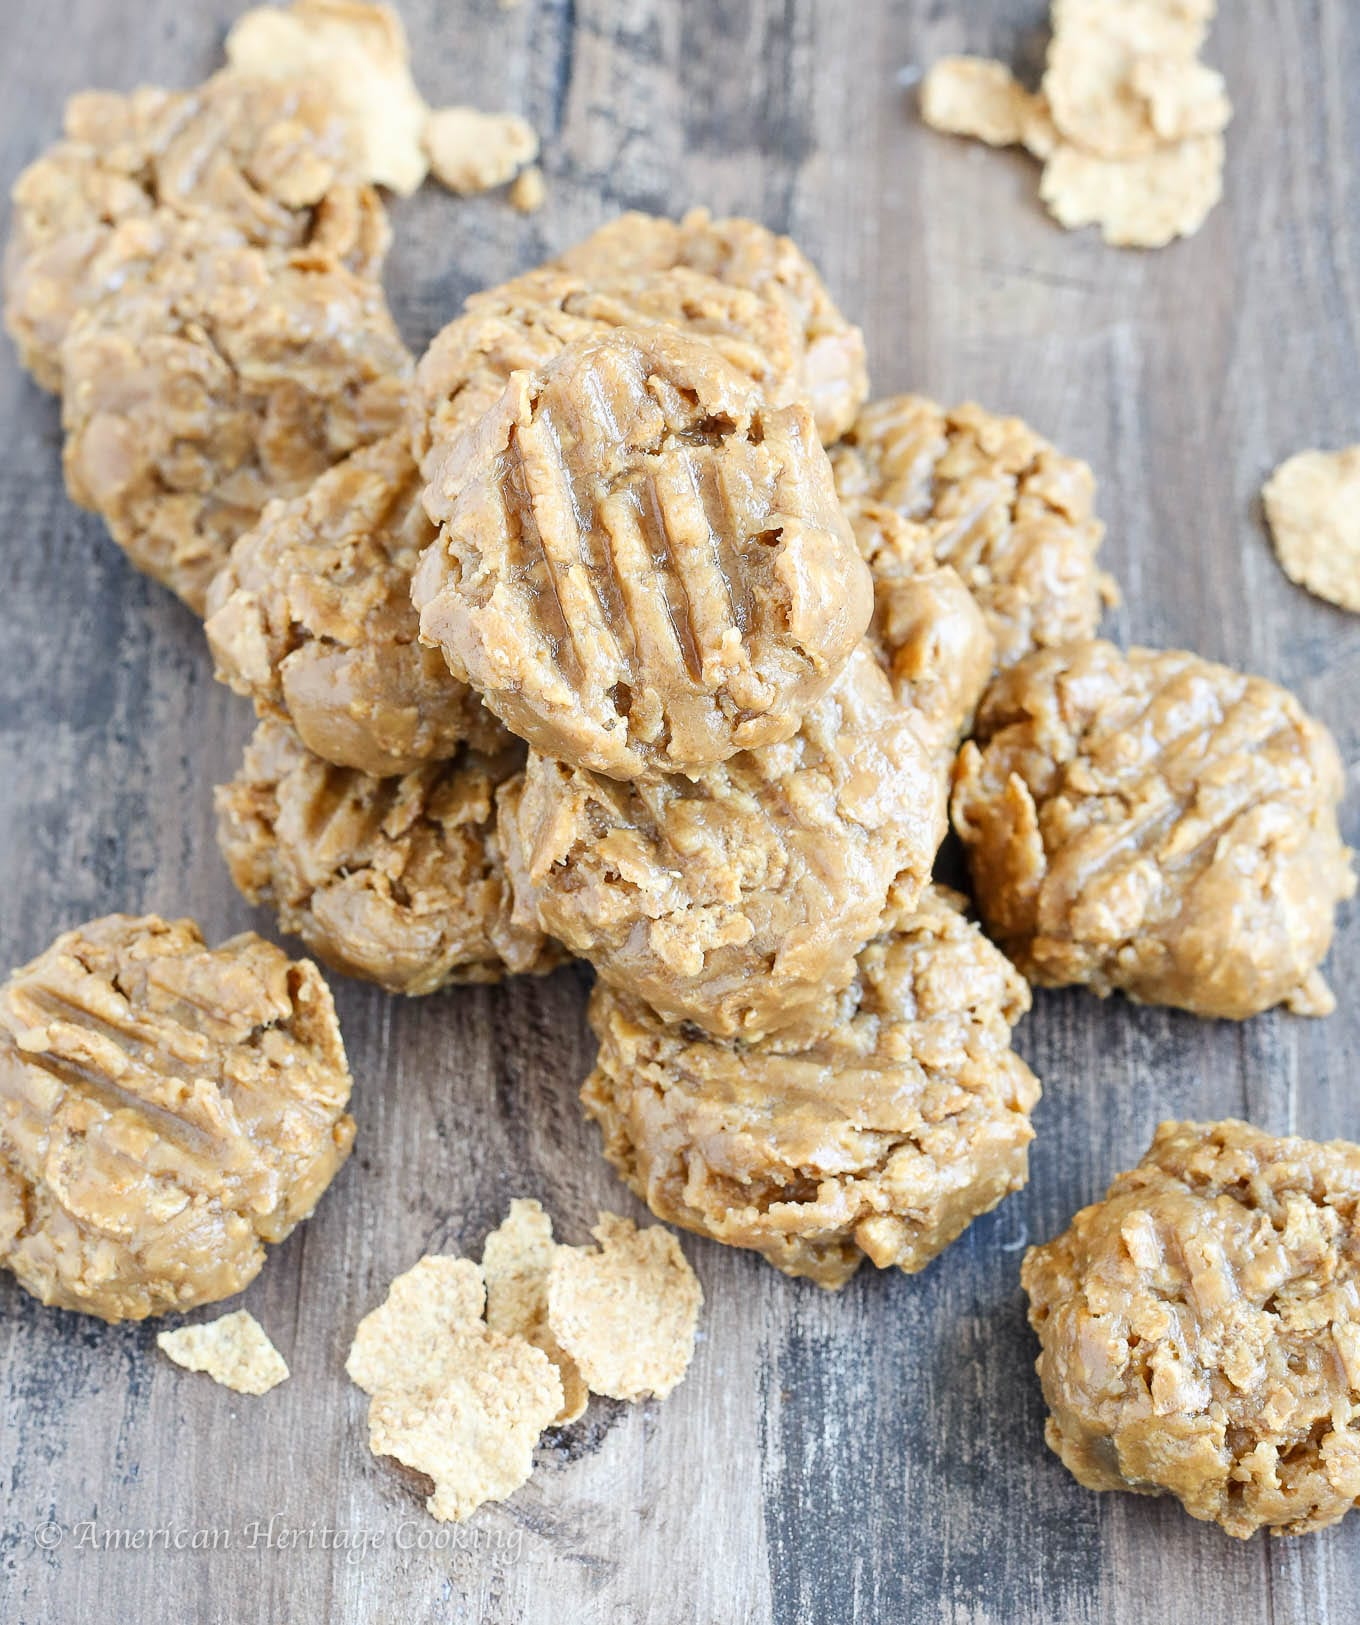 These 5 ingredient No Bake Peanut Butter Cookies are soft and crunchy and chewy all at the same time! The sweet peanut butter flavor will have you reaching for another!